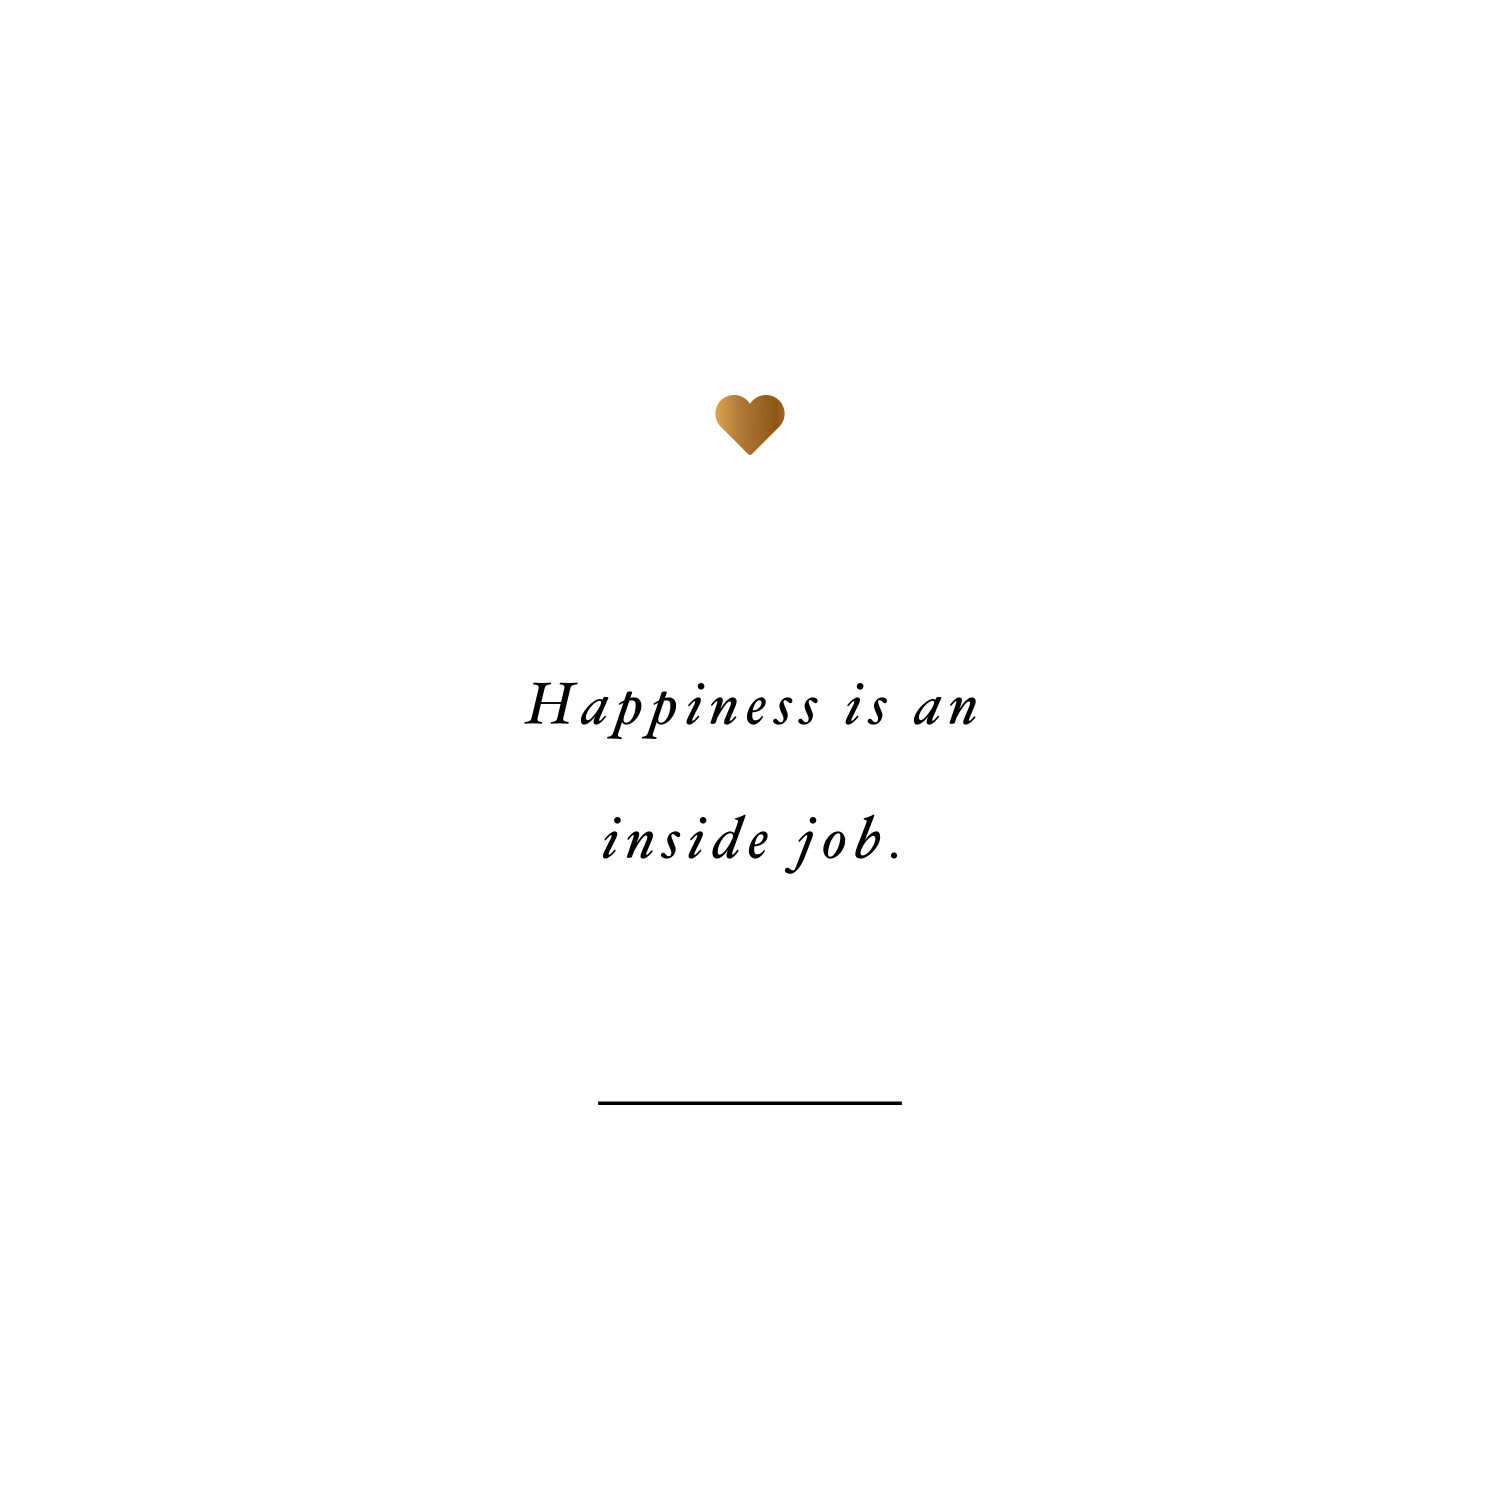 Happiness is an inside job! Browse our collection of inspirational exercise and fitness quotes and get instant weight loss and training motivation. Transform positive thoughts into positive actions and get fit, healthy and happy! https://www.spotebi.com/workout-motivation/happiness-is-an-inside-job/